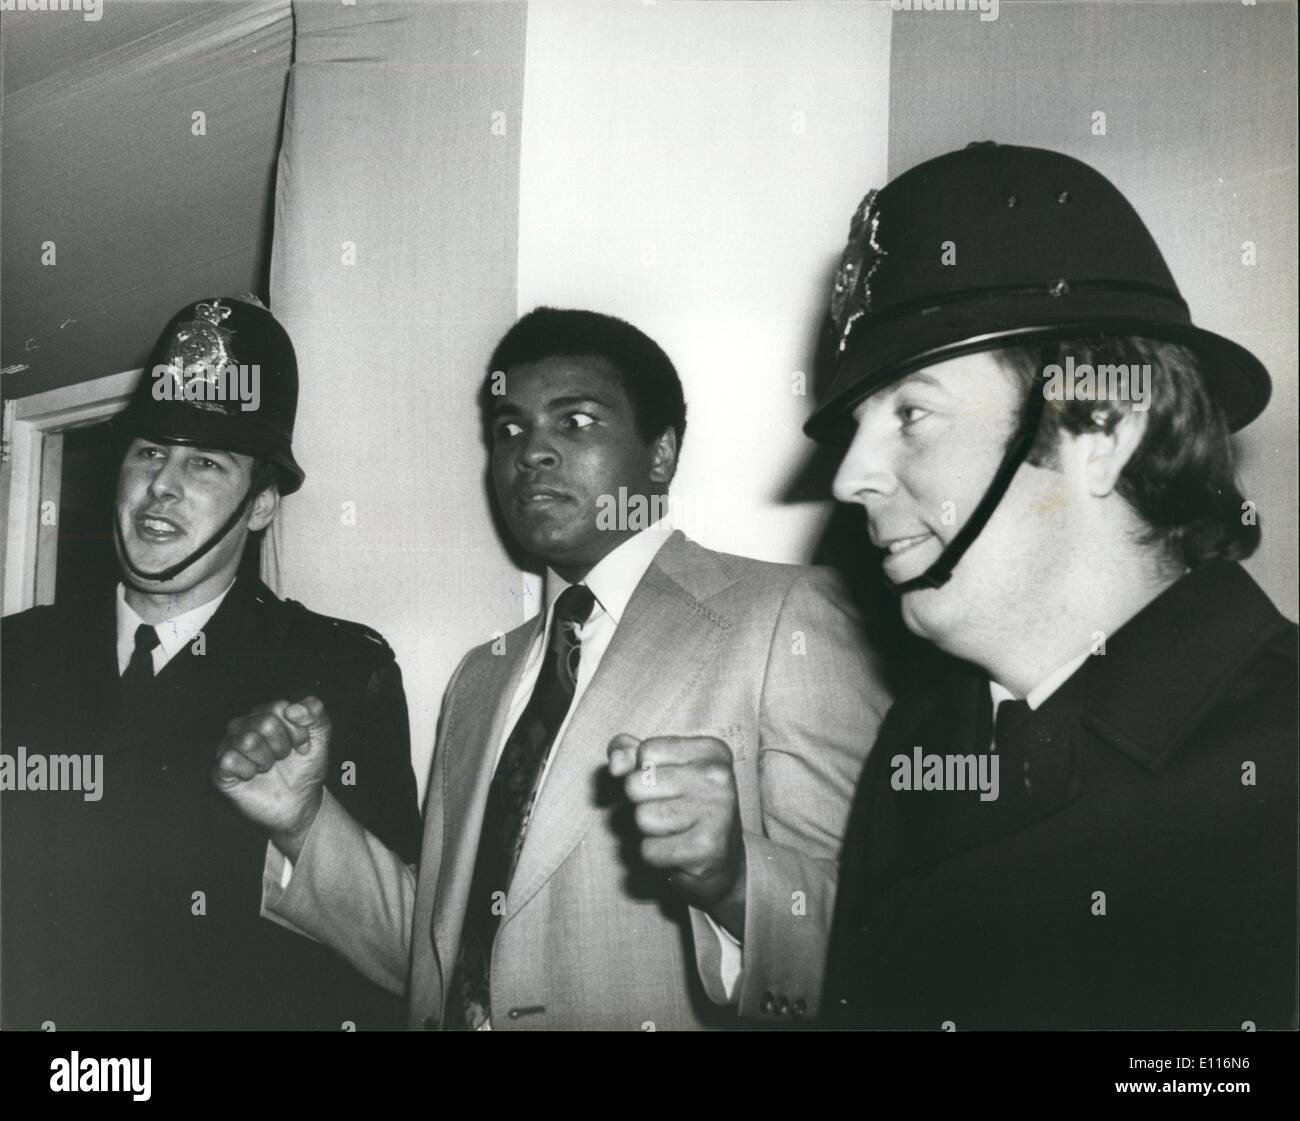 Mar. 03, 1976 - Muhammad Ali Meet British Heavyweight Champion Richard Dunn at Quaglino's Gym in London Muhammad Ali has the law to help him out when his visited the gym at Quaglino's today. - Stock Image